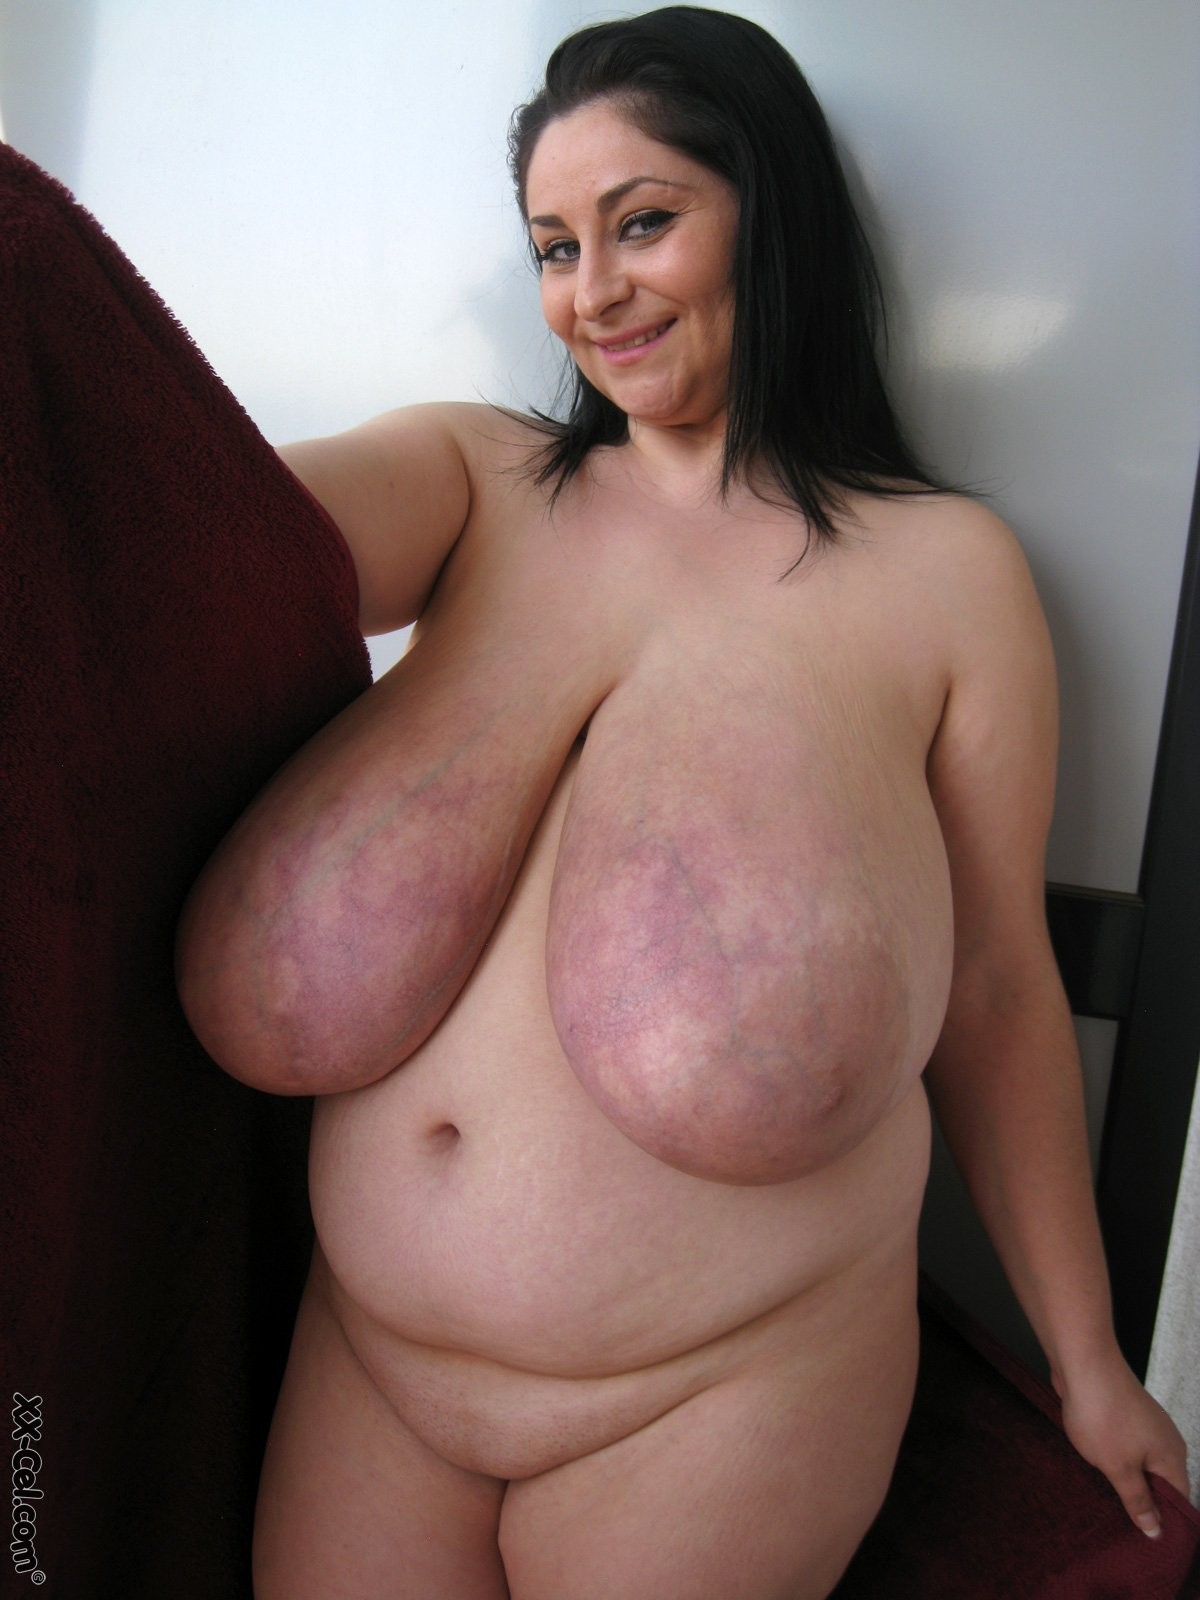 Super huge saggy tits